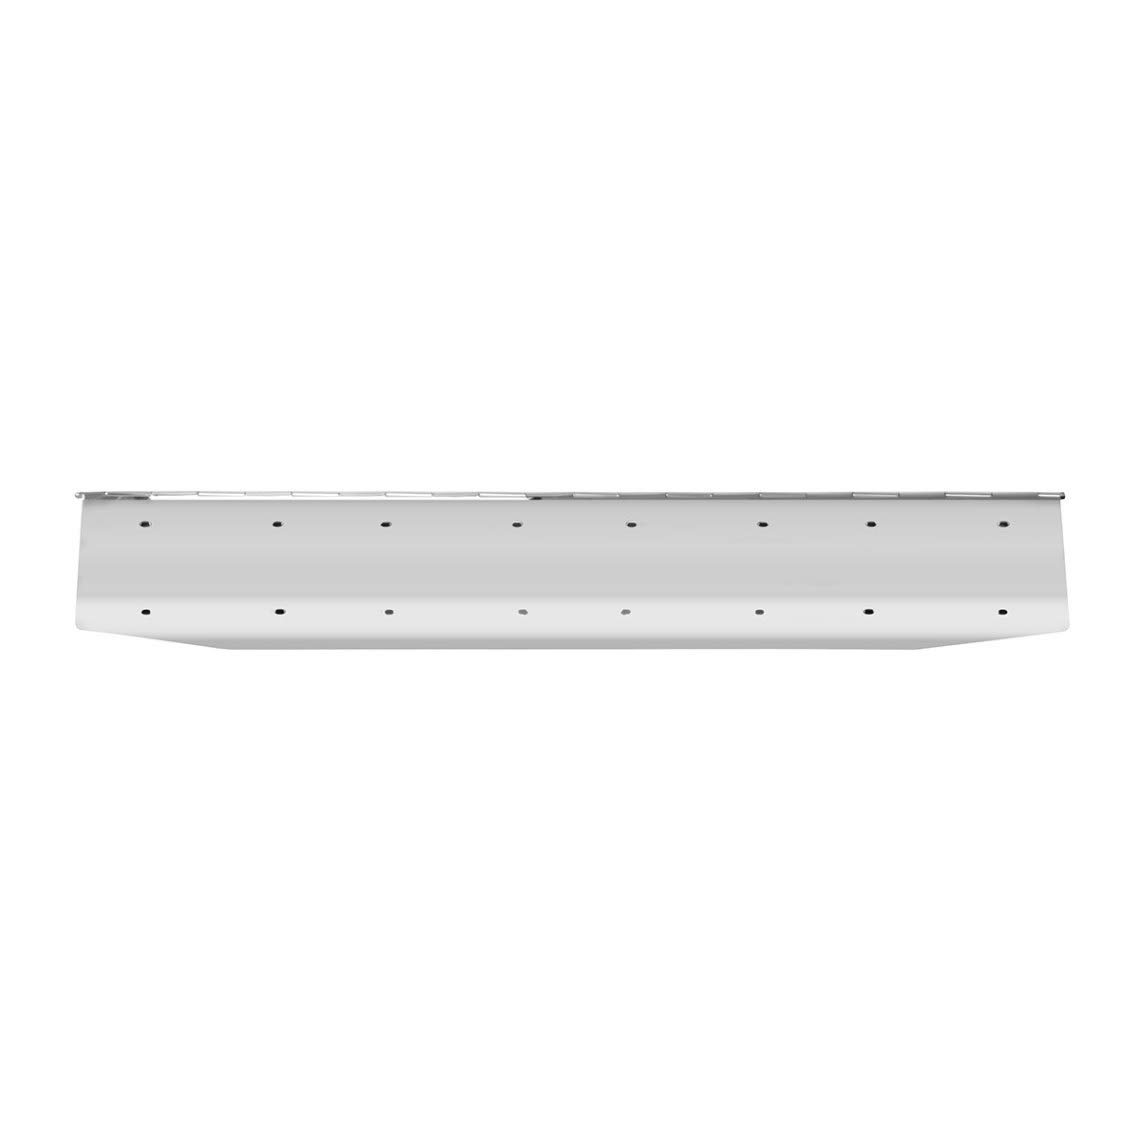 GG Grand General 60580 18 X 8 18 X 8 inches Chrome 1 License Plate Holder Angle Cut